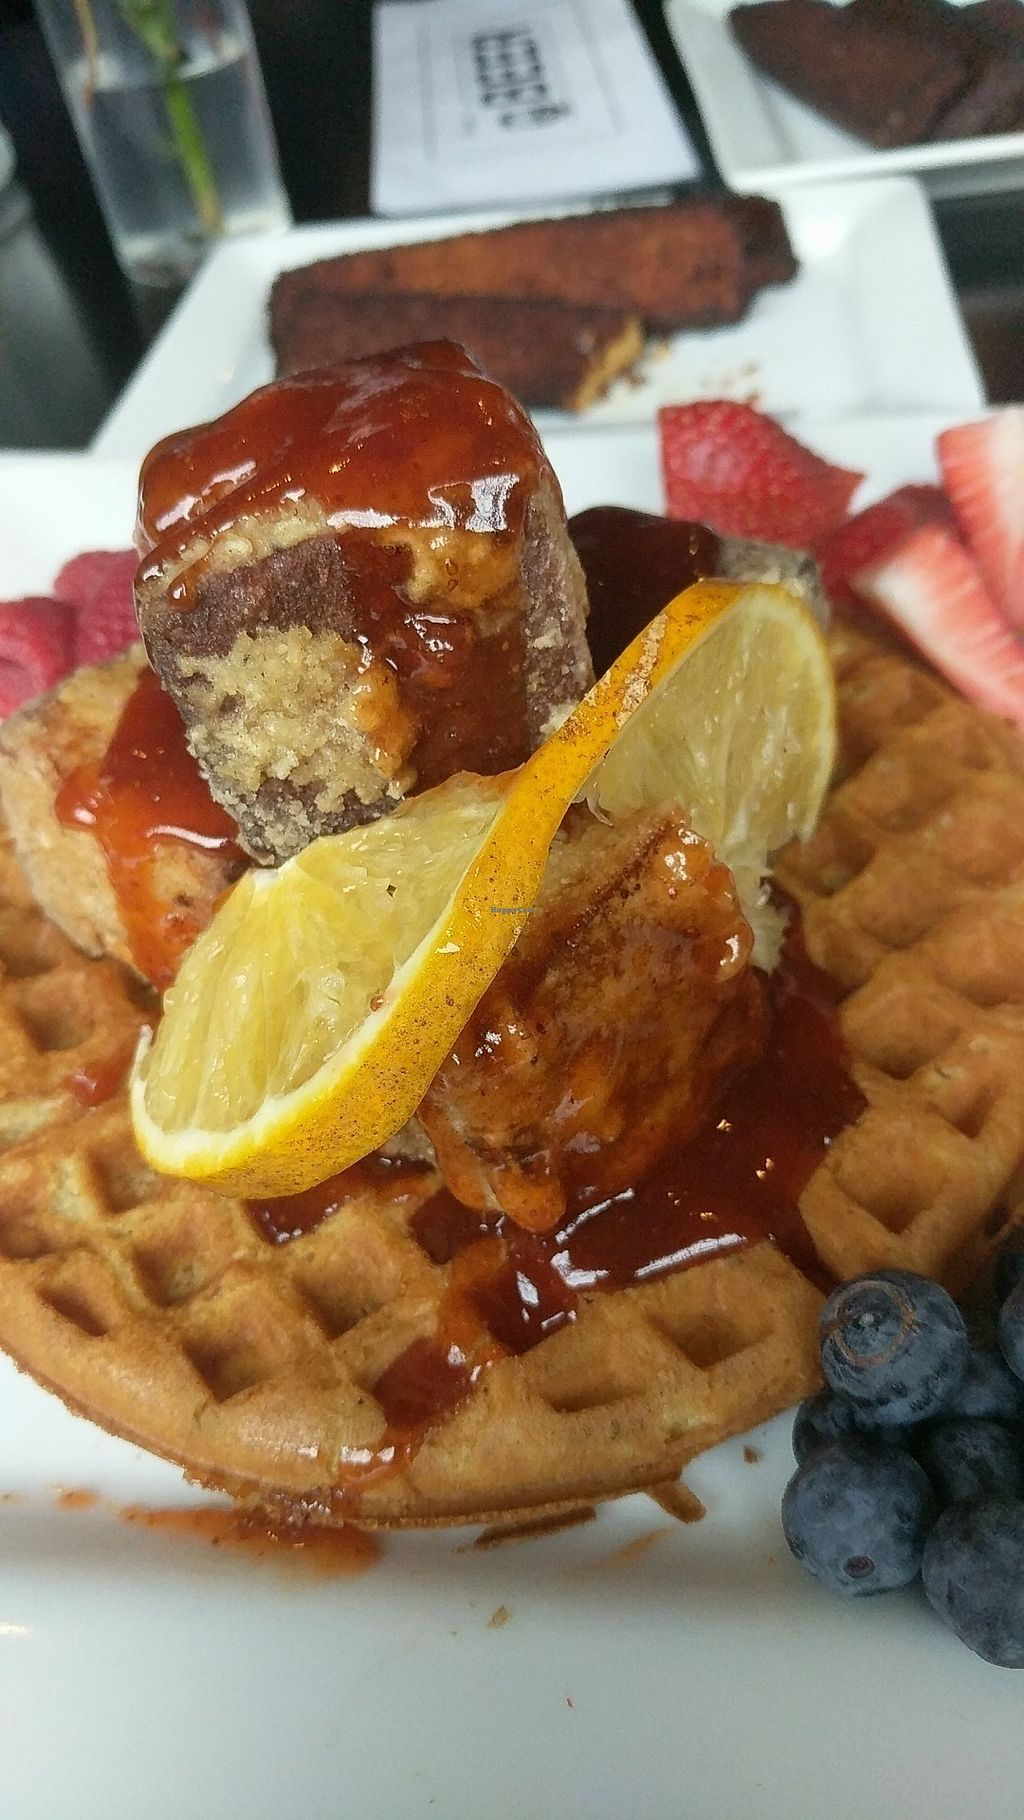 """Photo of The Owl House  by <a href=""""/members/profile/lizardlucas"""">lizardlucas</a> <br/>Tofu and waffles from their brunch menu! <br/> February 19, 2018  - <a href='/contact/abuse/image/24751/361118'>Report</a>"""